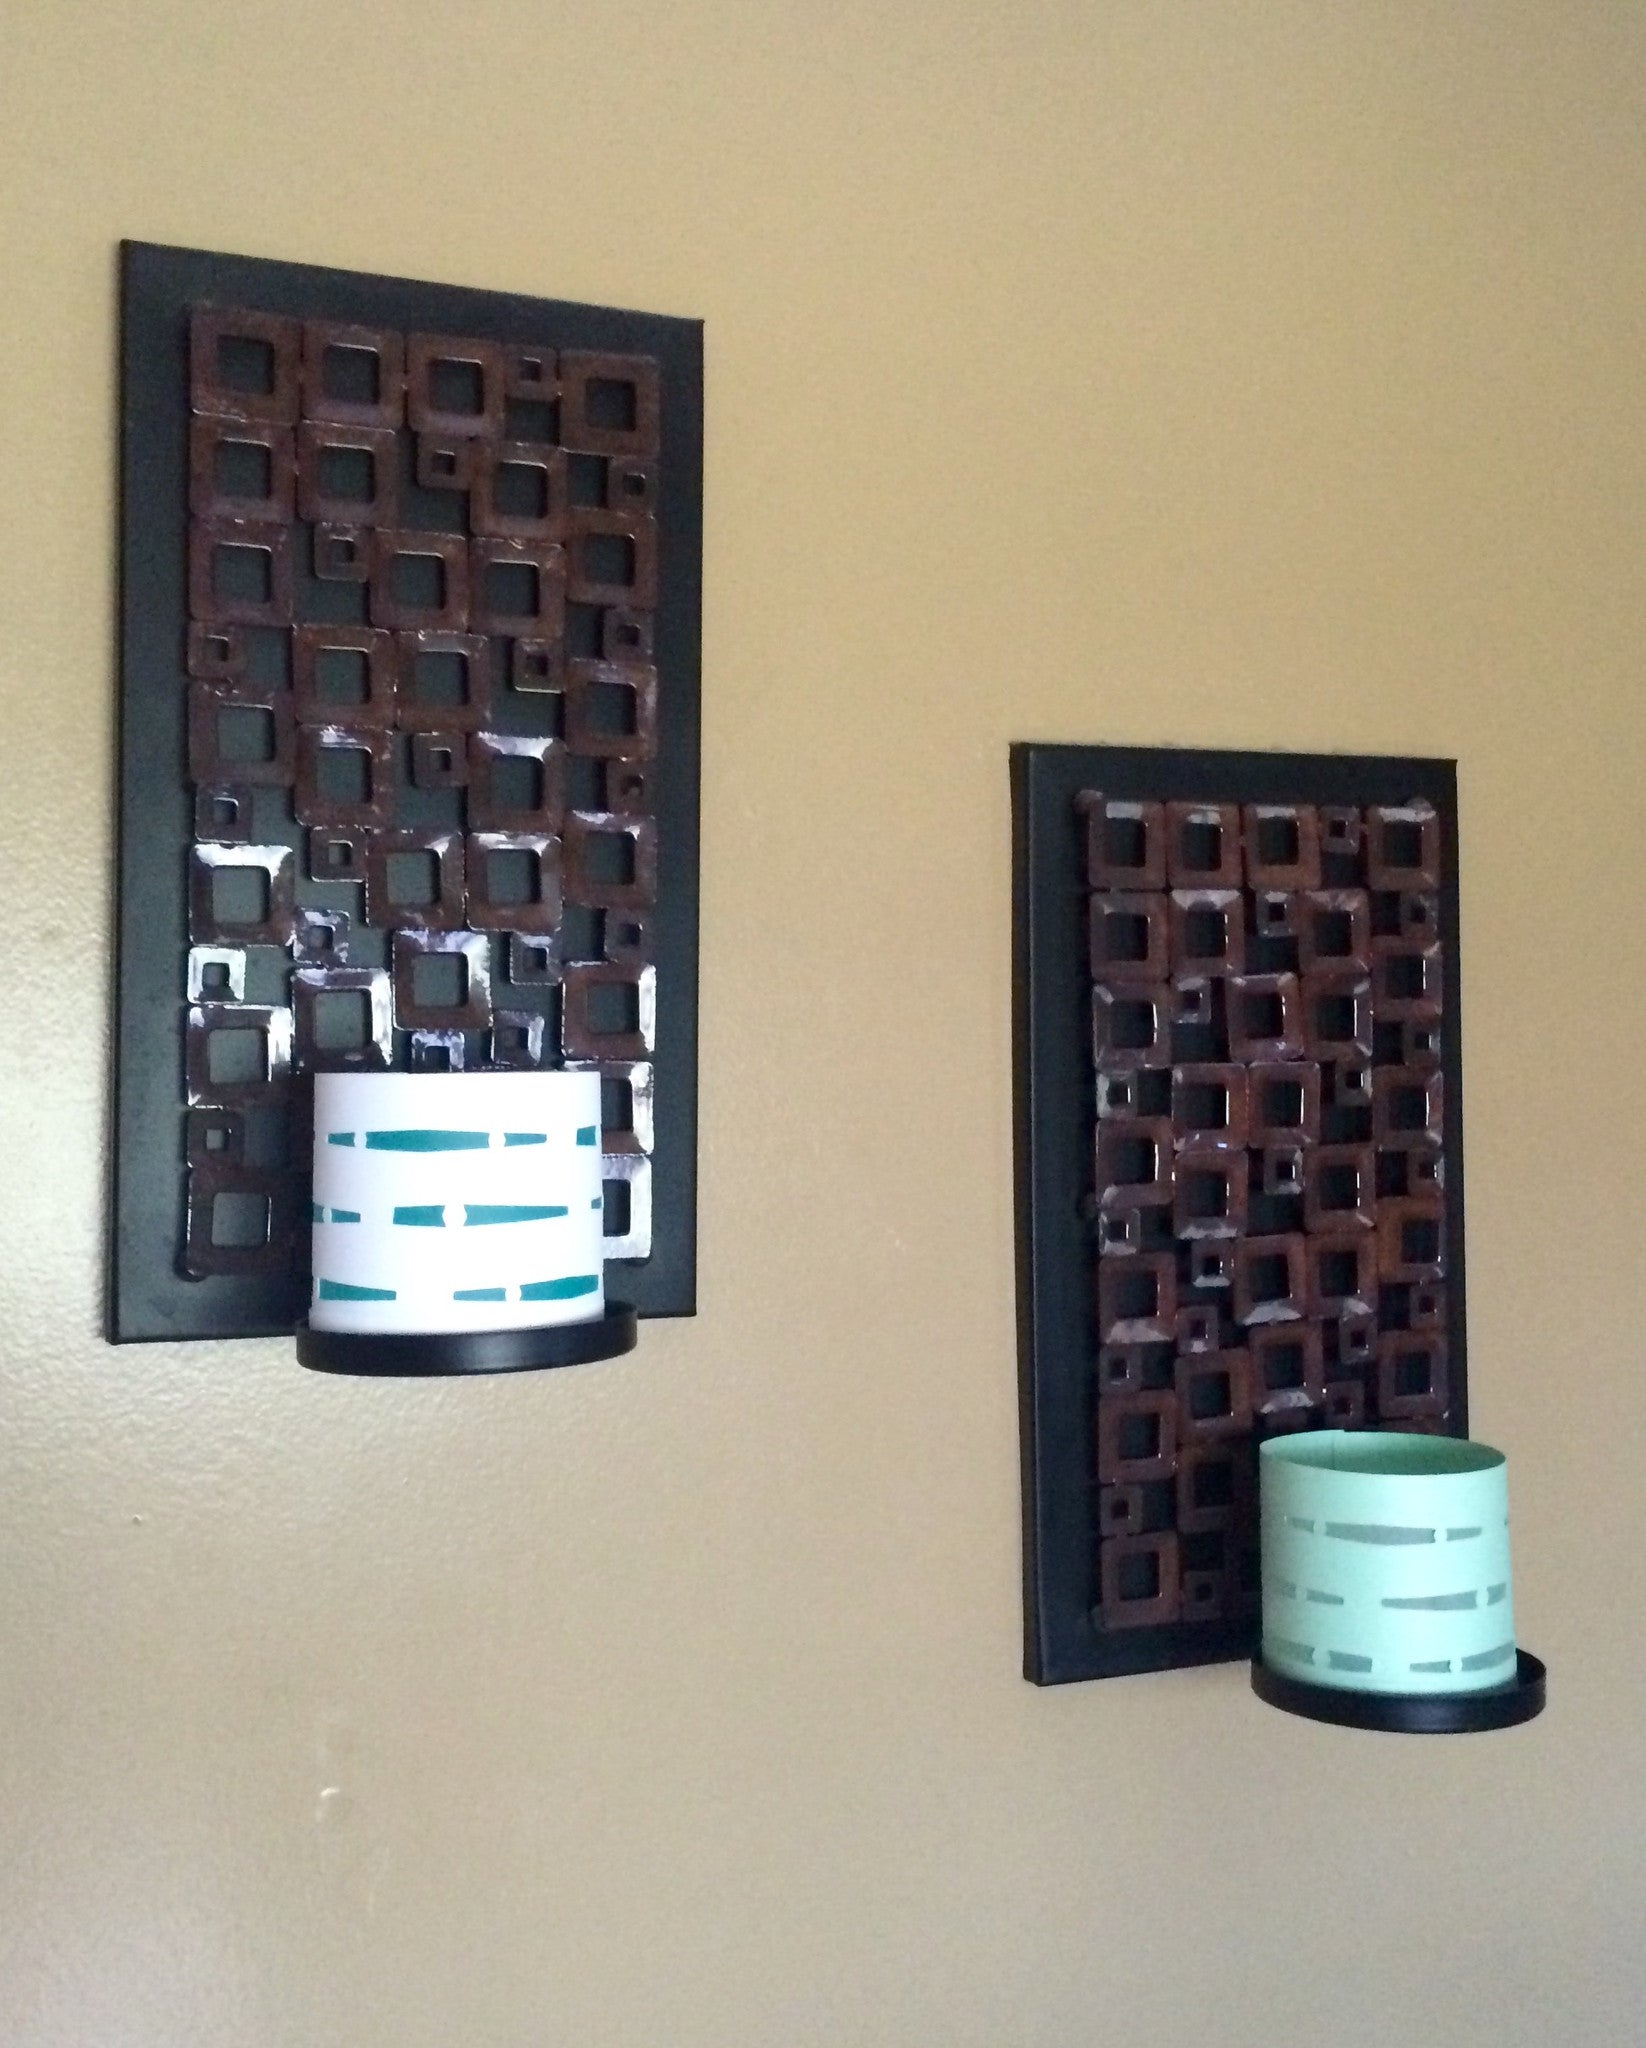 wave circular candle holders hung on wall